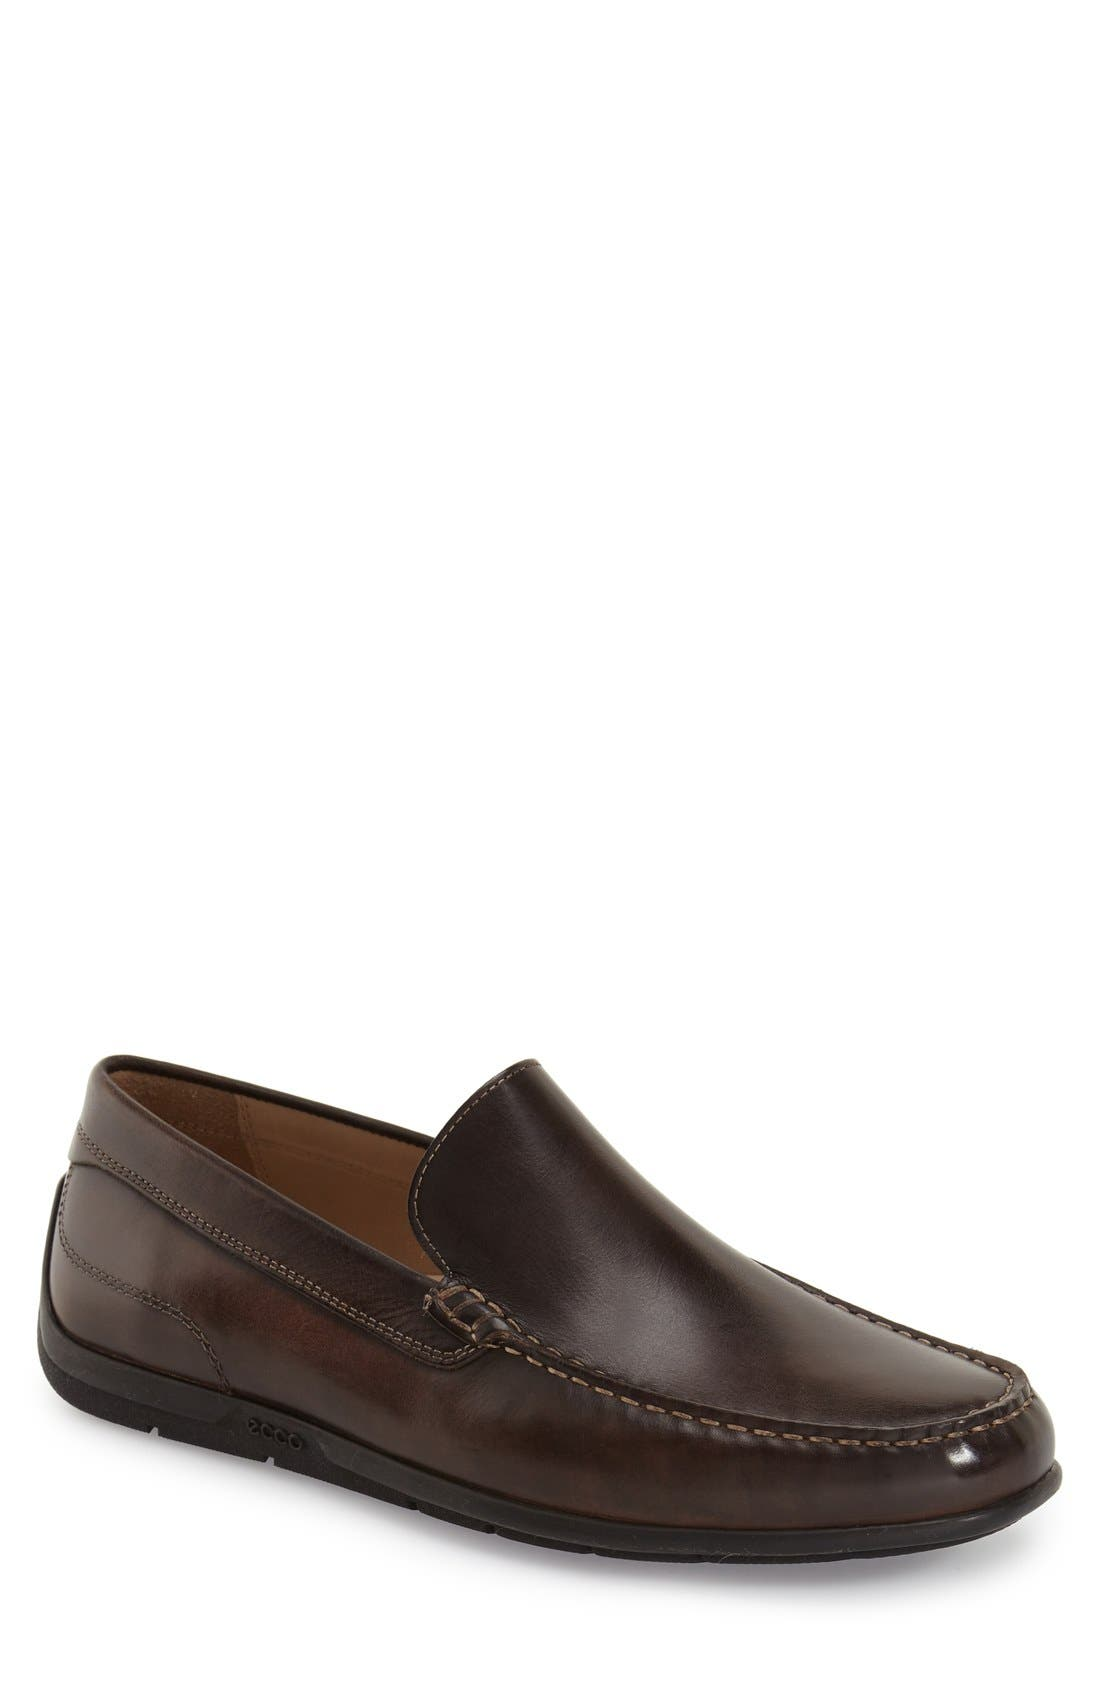 'Classic Moc II' Venetian Loafer,                         Main,                         color, COFFEE LEATHER